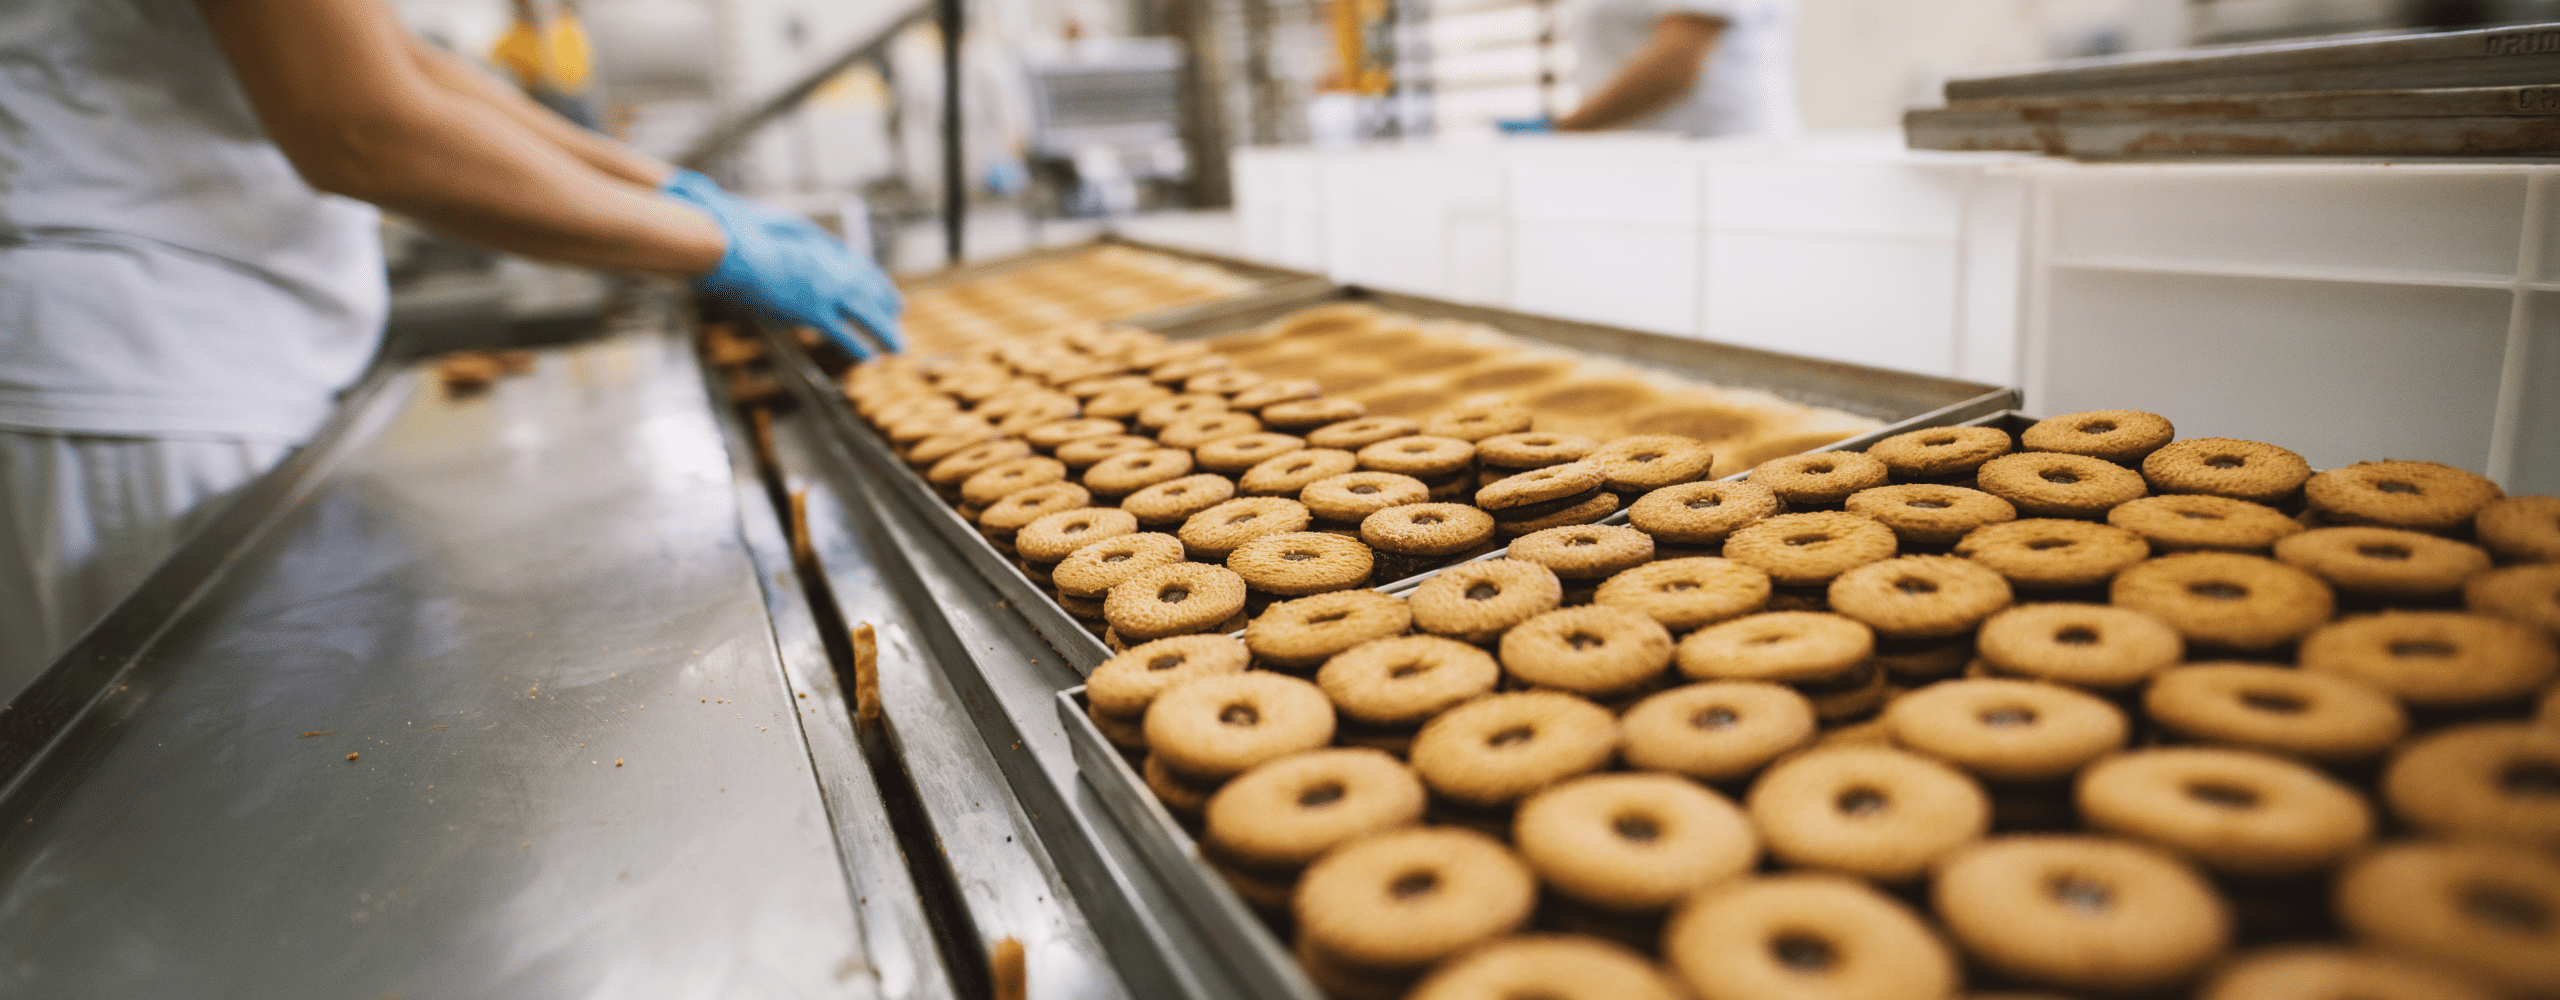 Food manufacturing biscuits